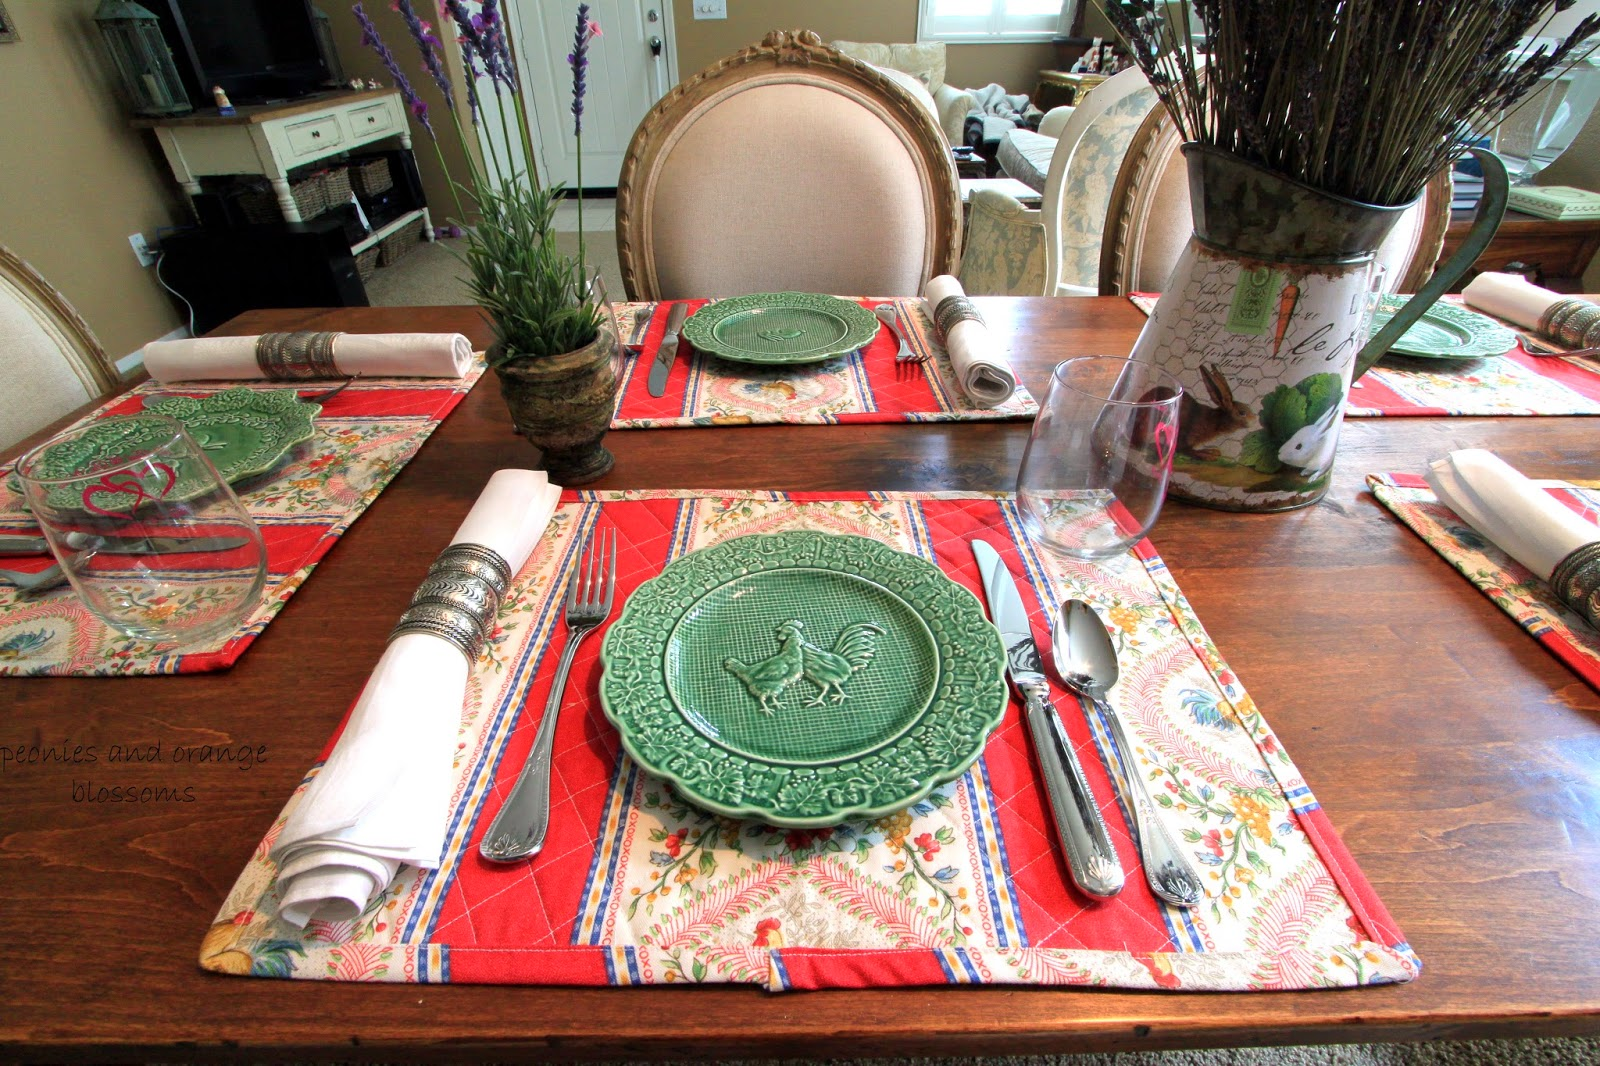 French country table with French rooster placemats, lavender, and green plates - Peonies and Orange Blossoms